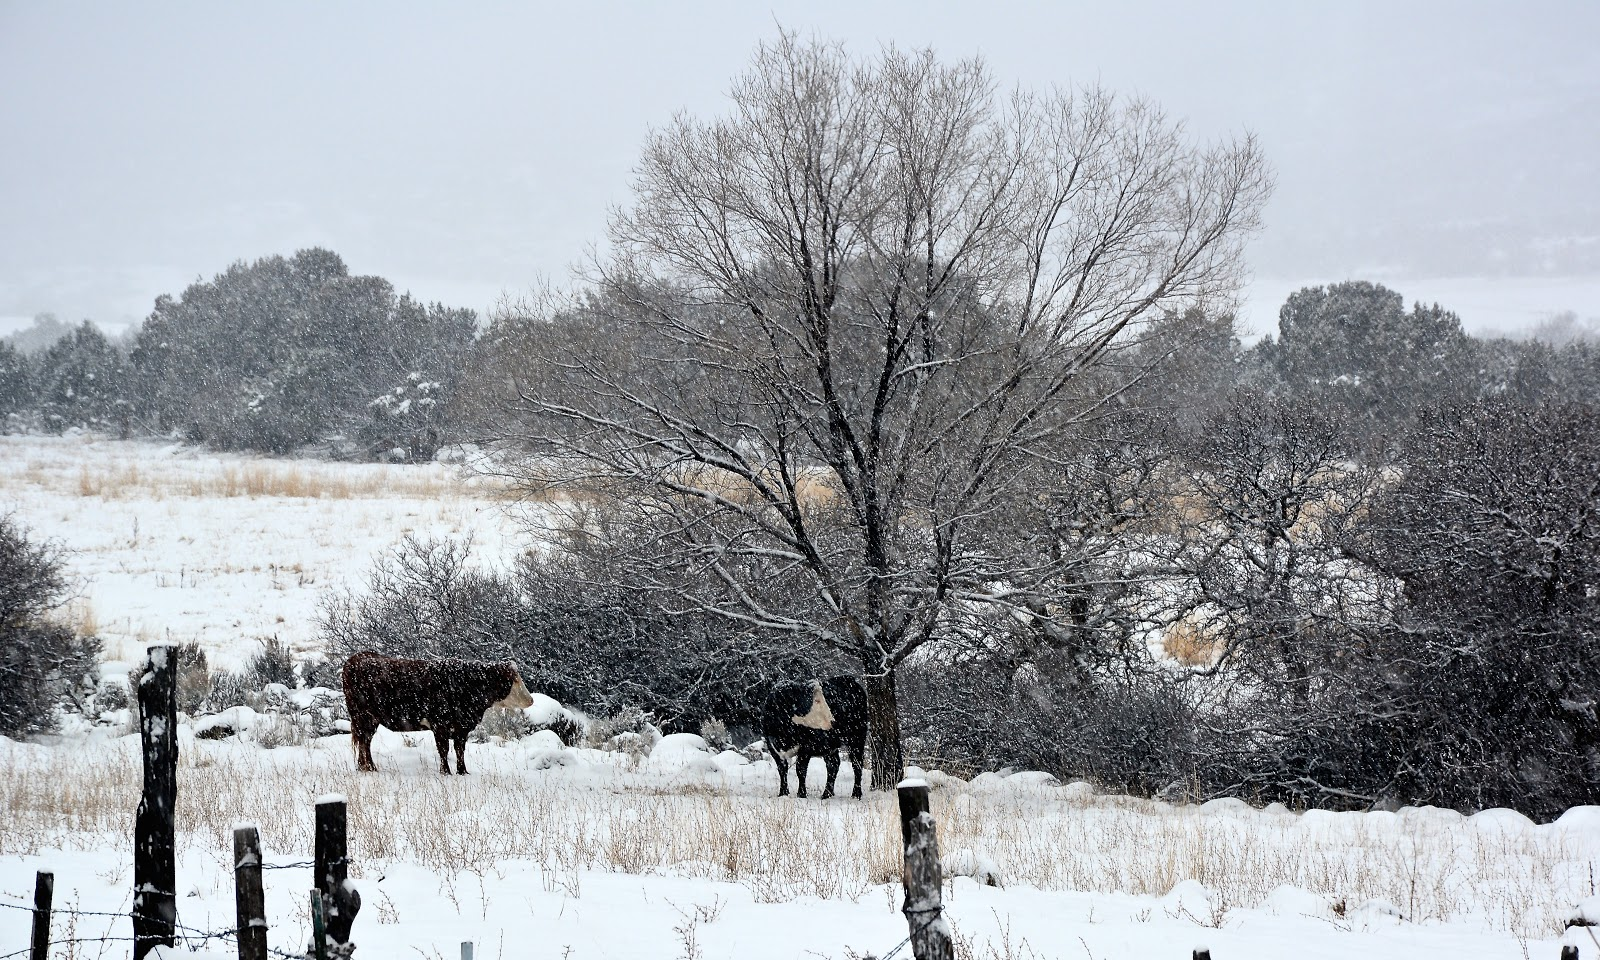 Cows in the snow in Colorado, USA